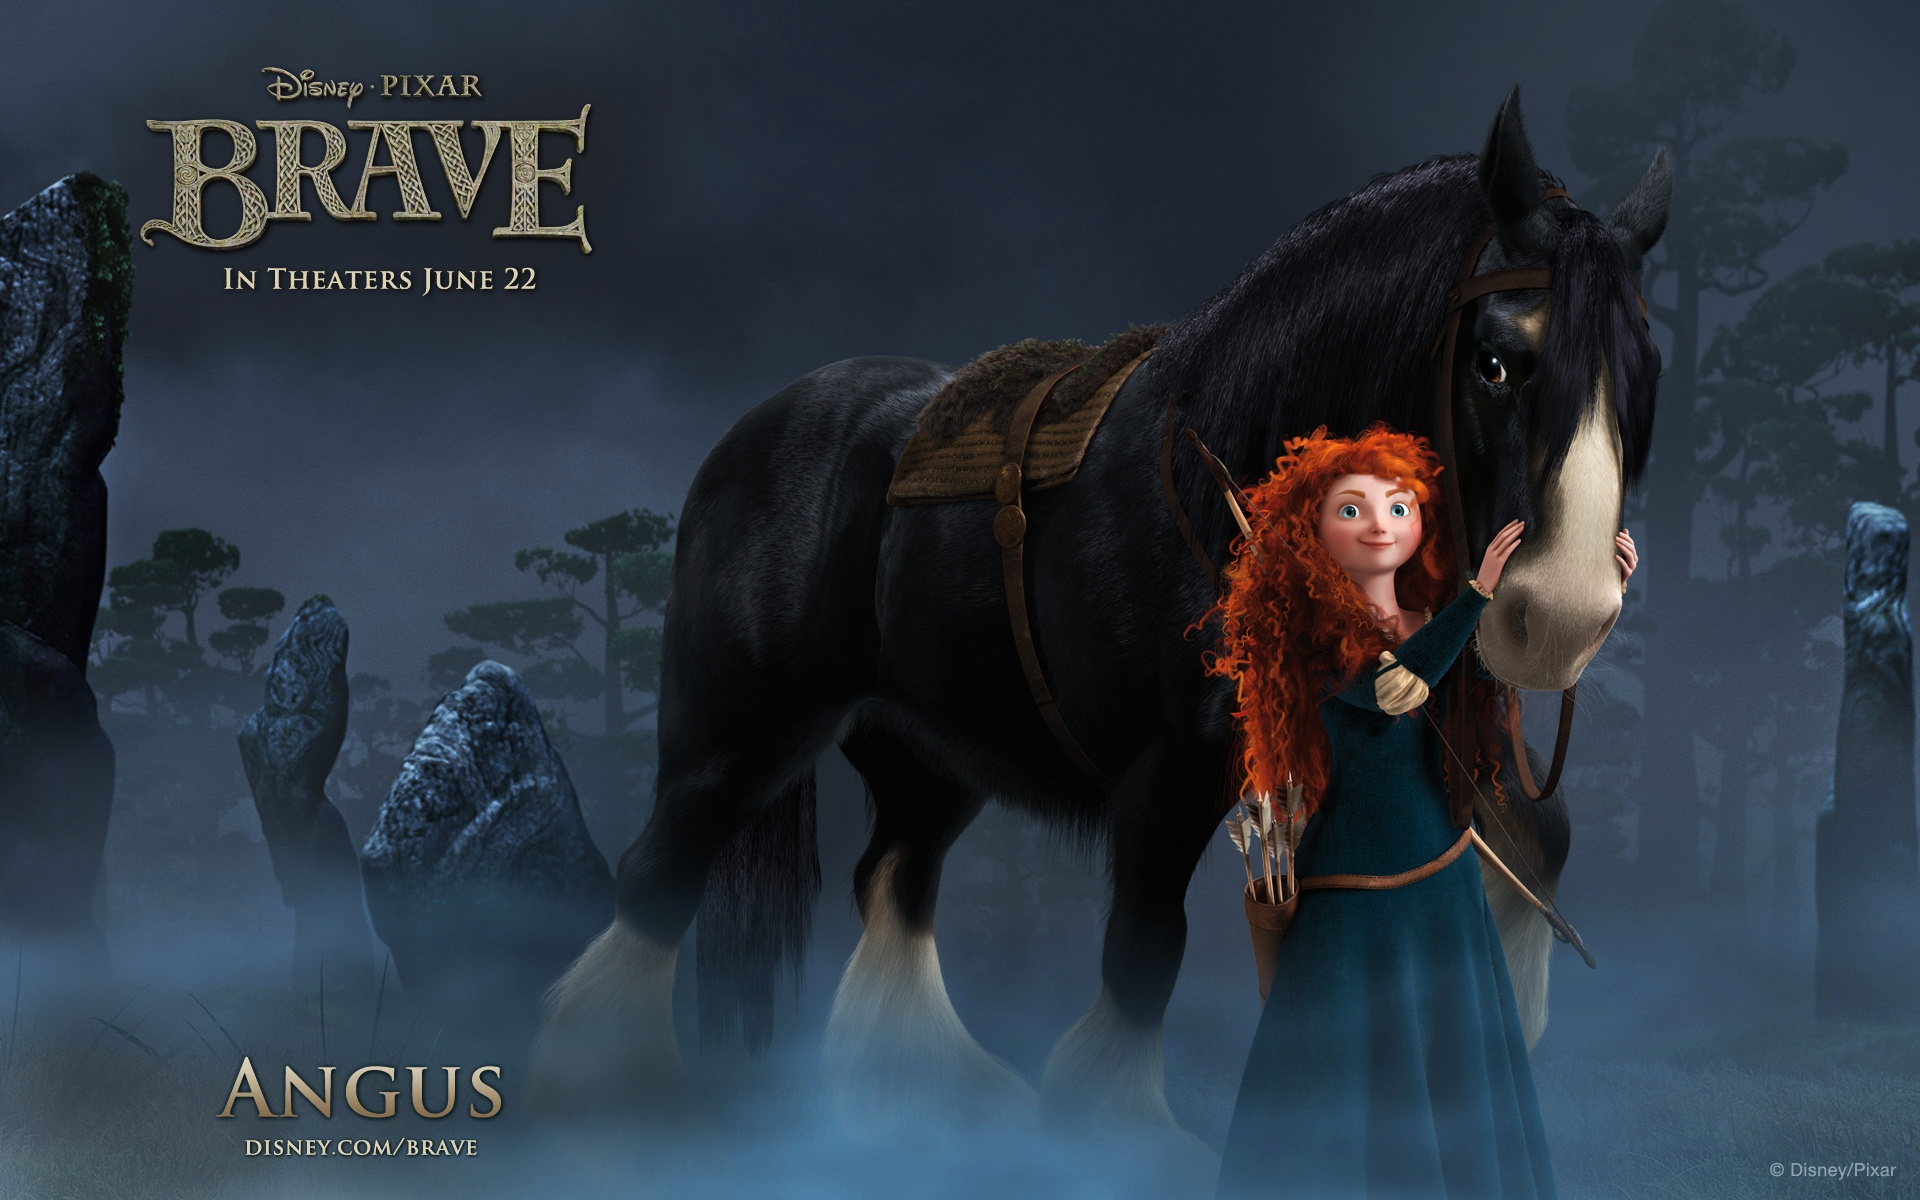 Merida & Angus in Brave